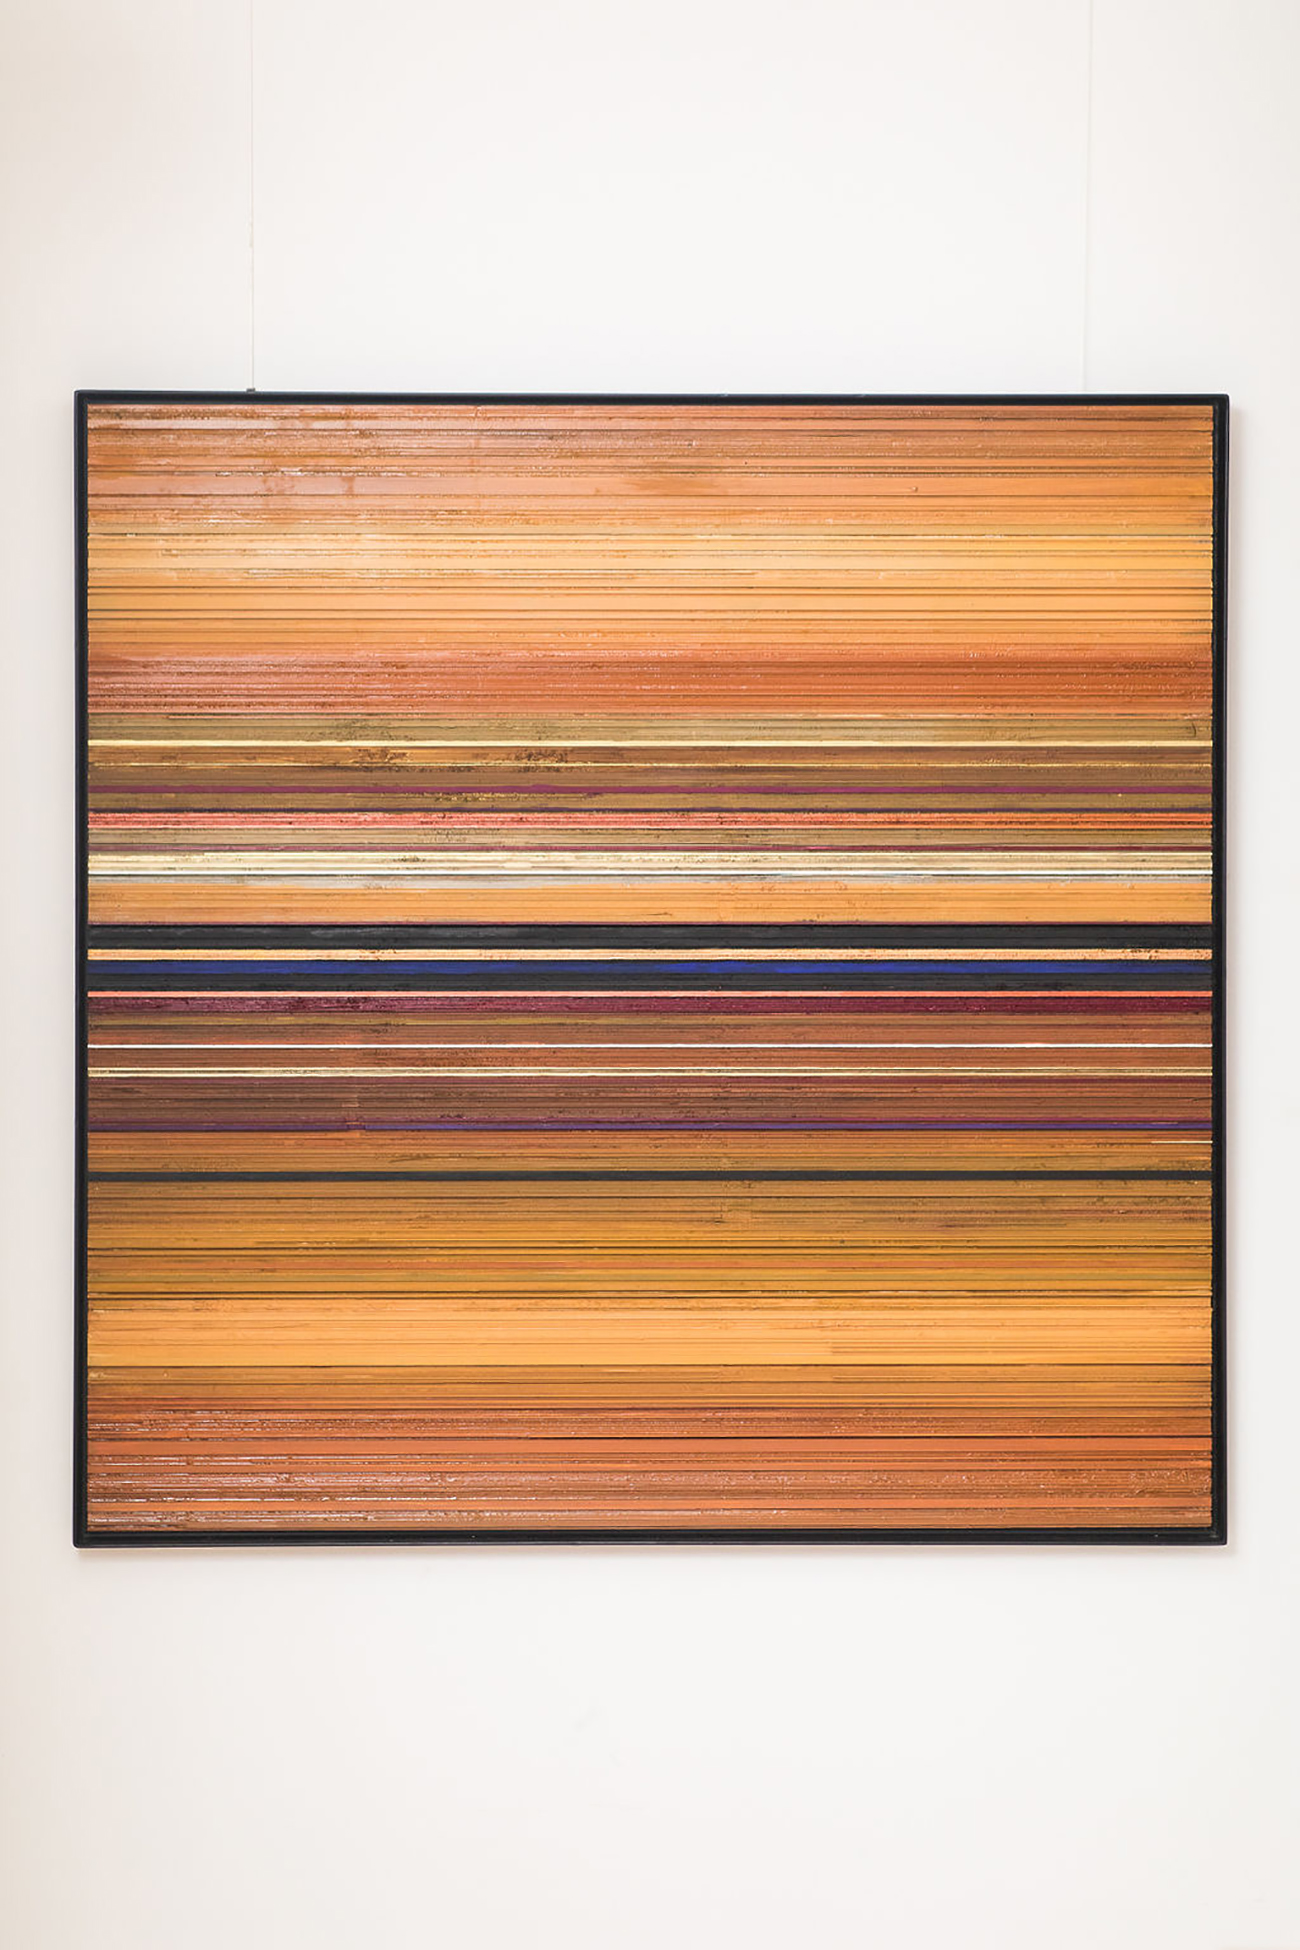 Abstract painting on wood created by Hélène Dawans.Since 2011, the painter explores painting on wooden panels previously used by carpenters.